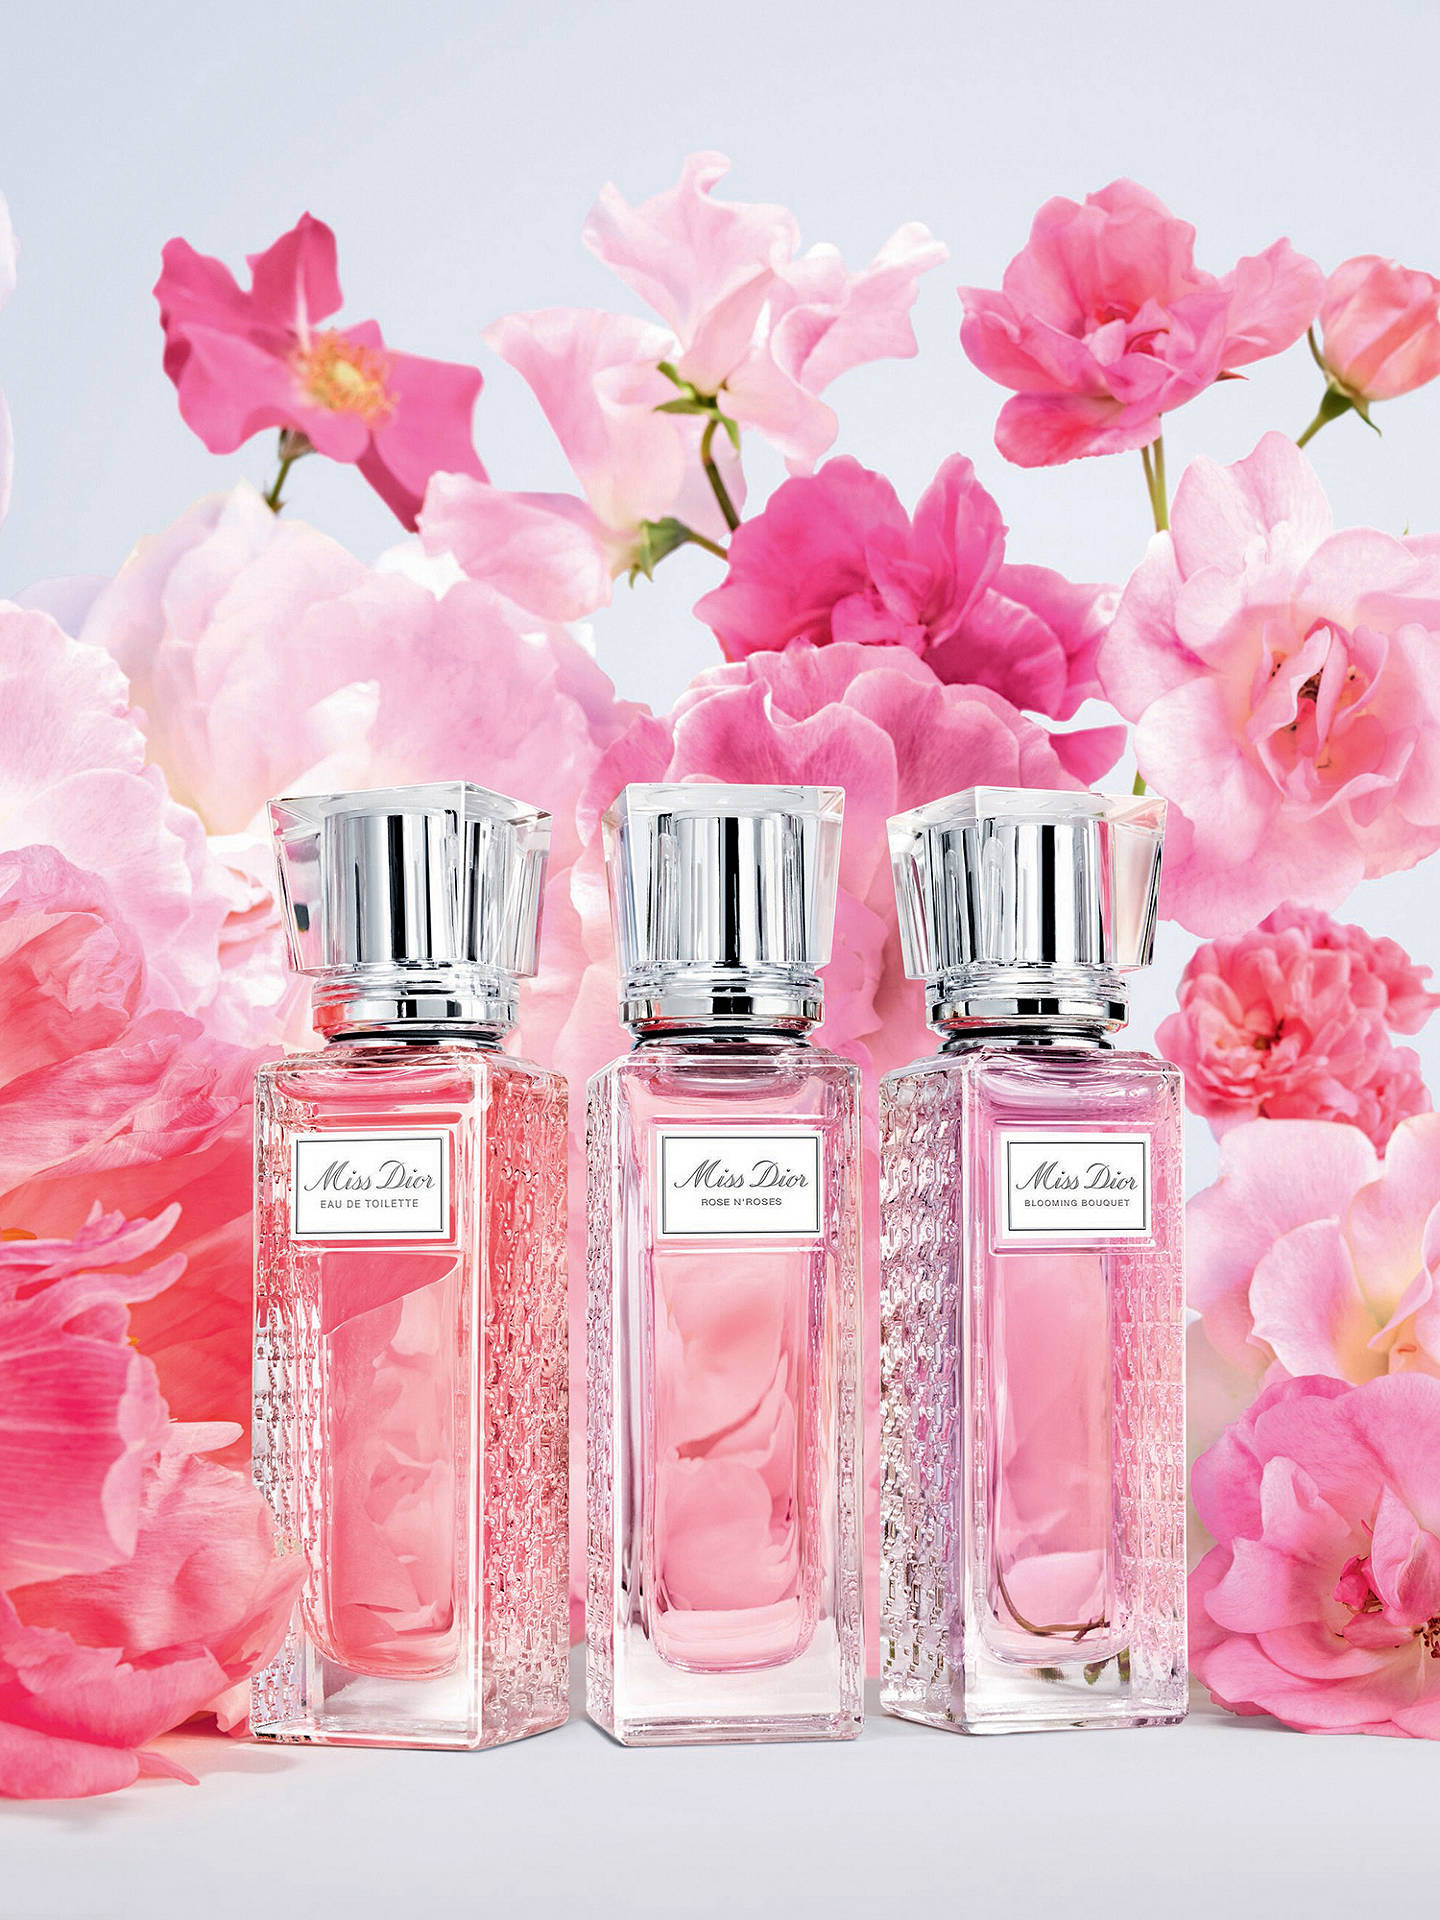 c3f2ee417 ... Buy Dior Miss Dior Blooming Bouquet Roller-Pearl, 20ml Online at  johnlewis.com ...